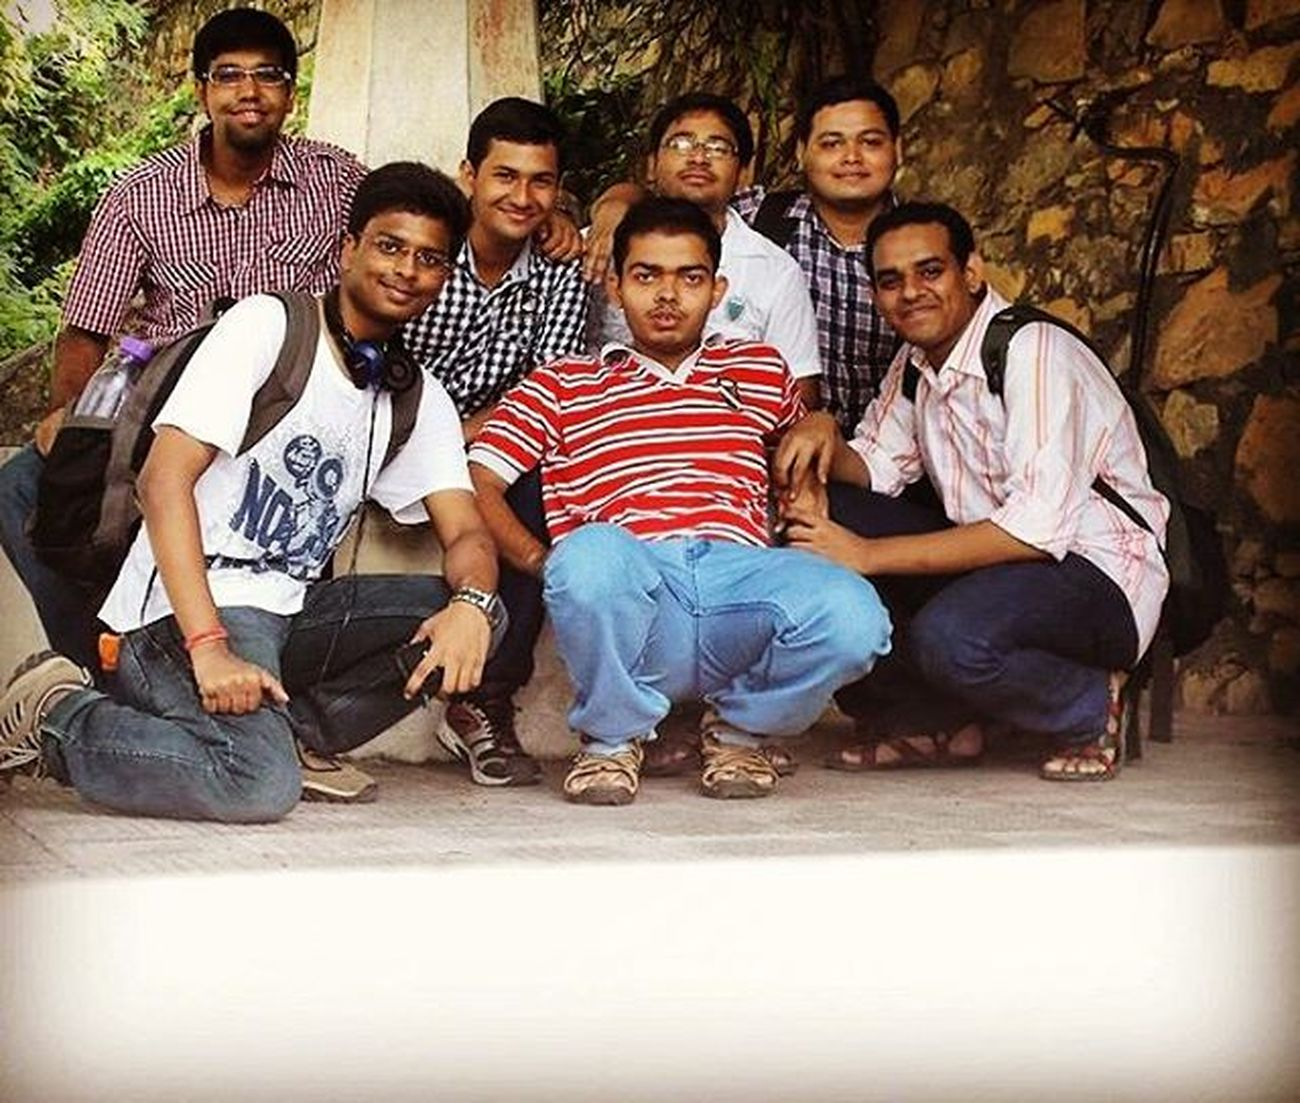 When we fell in love with a city! Throwback Traveldiaries Udaipur Cityoflakes TheTrip 2013 Autumn The3rdyears Mbbs Doclife Mediots Finalyearmbbs Nostalgia Bromance Awesome